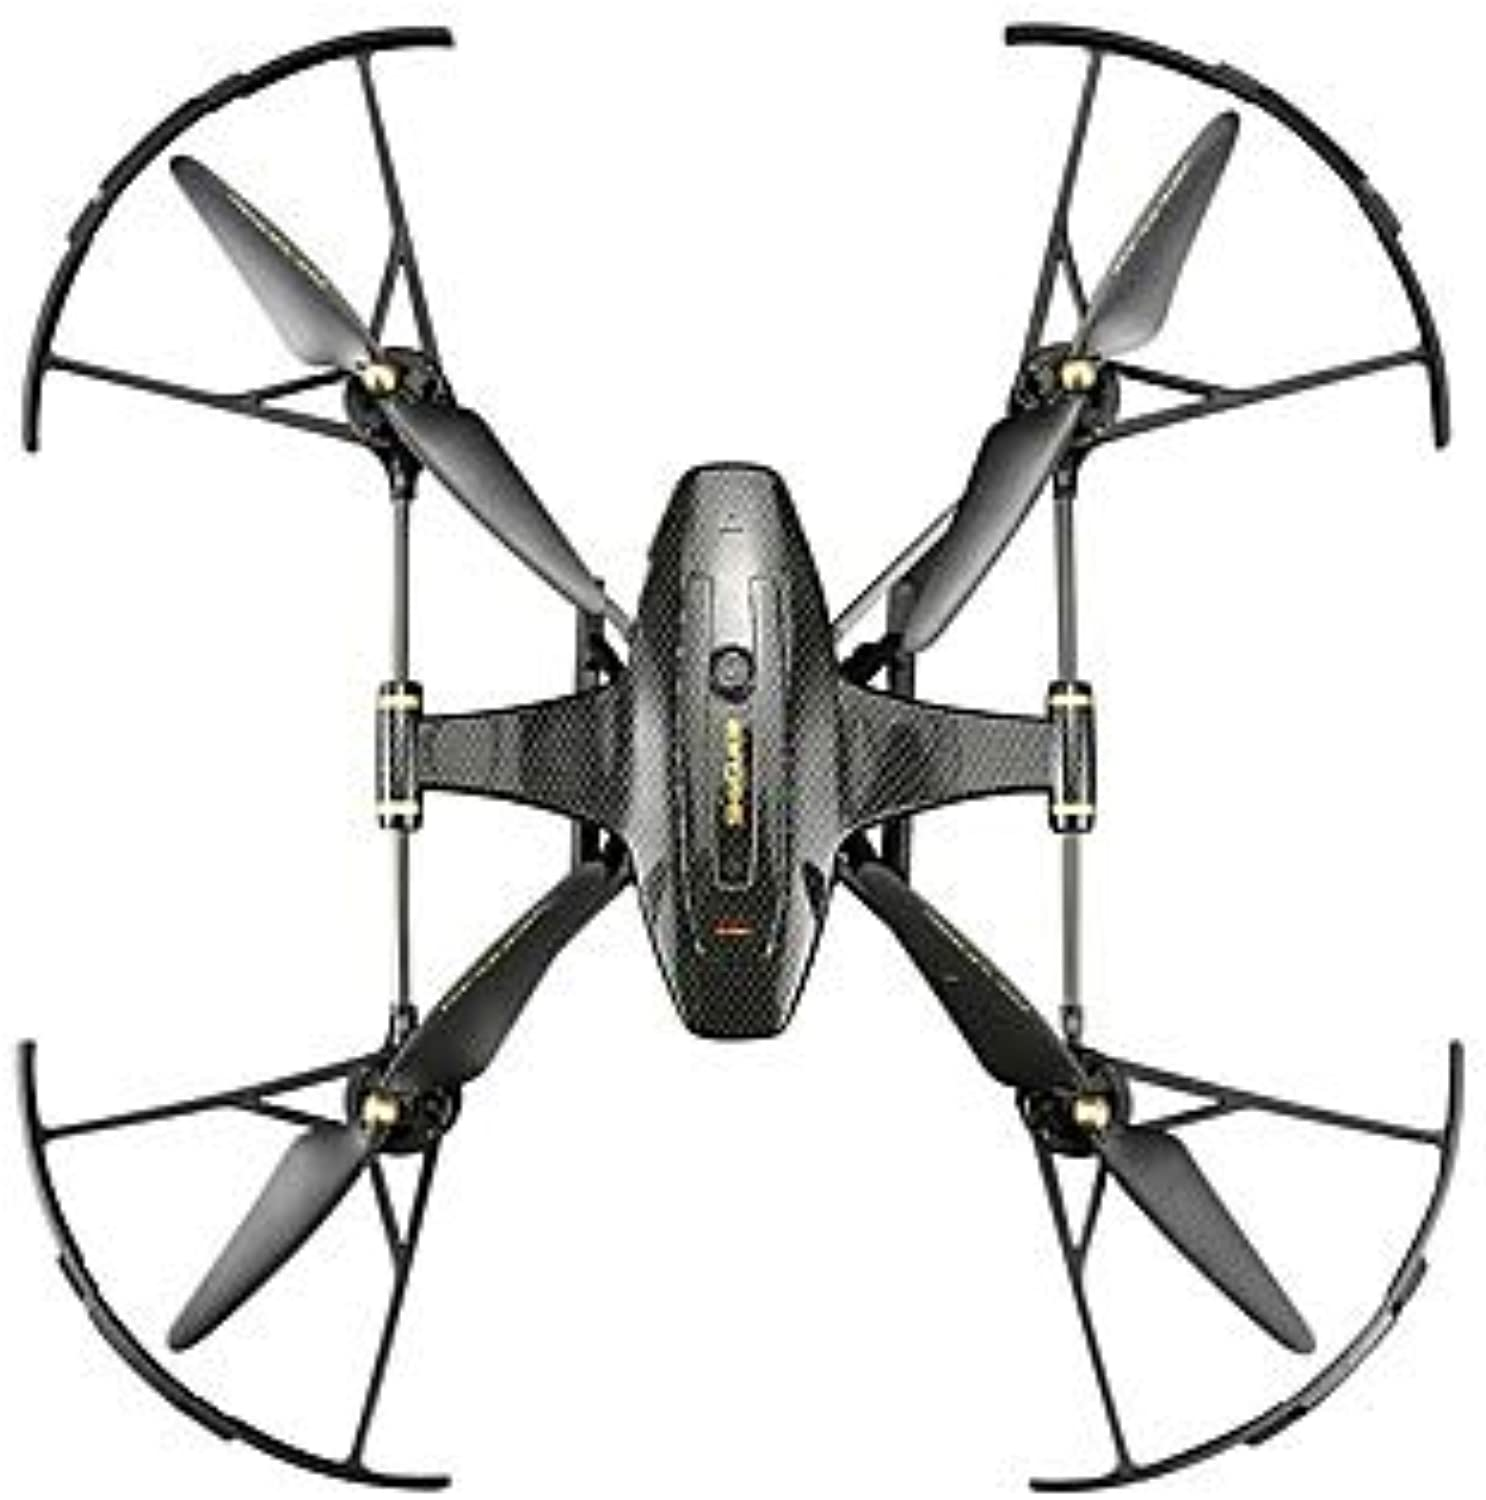 YAMEIJIA RC Drone 4 Channel 6 Axis 2.4G With HD Camera 2.0MP 3.0MP 720P 1080P RC Quadcopter FPV One Key To Auto-Return GPS